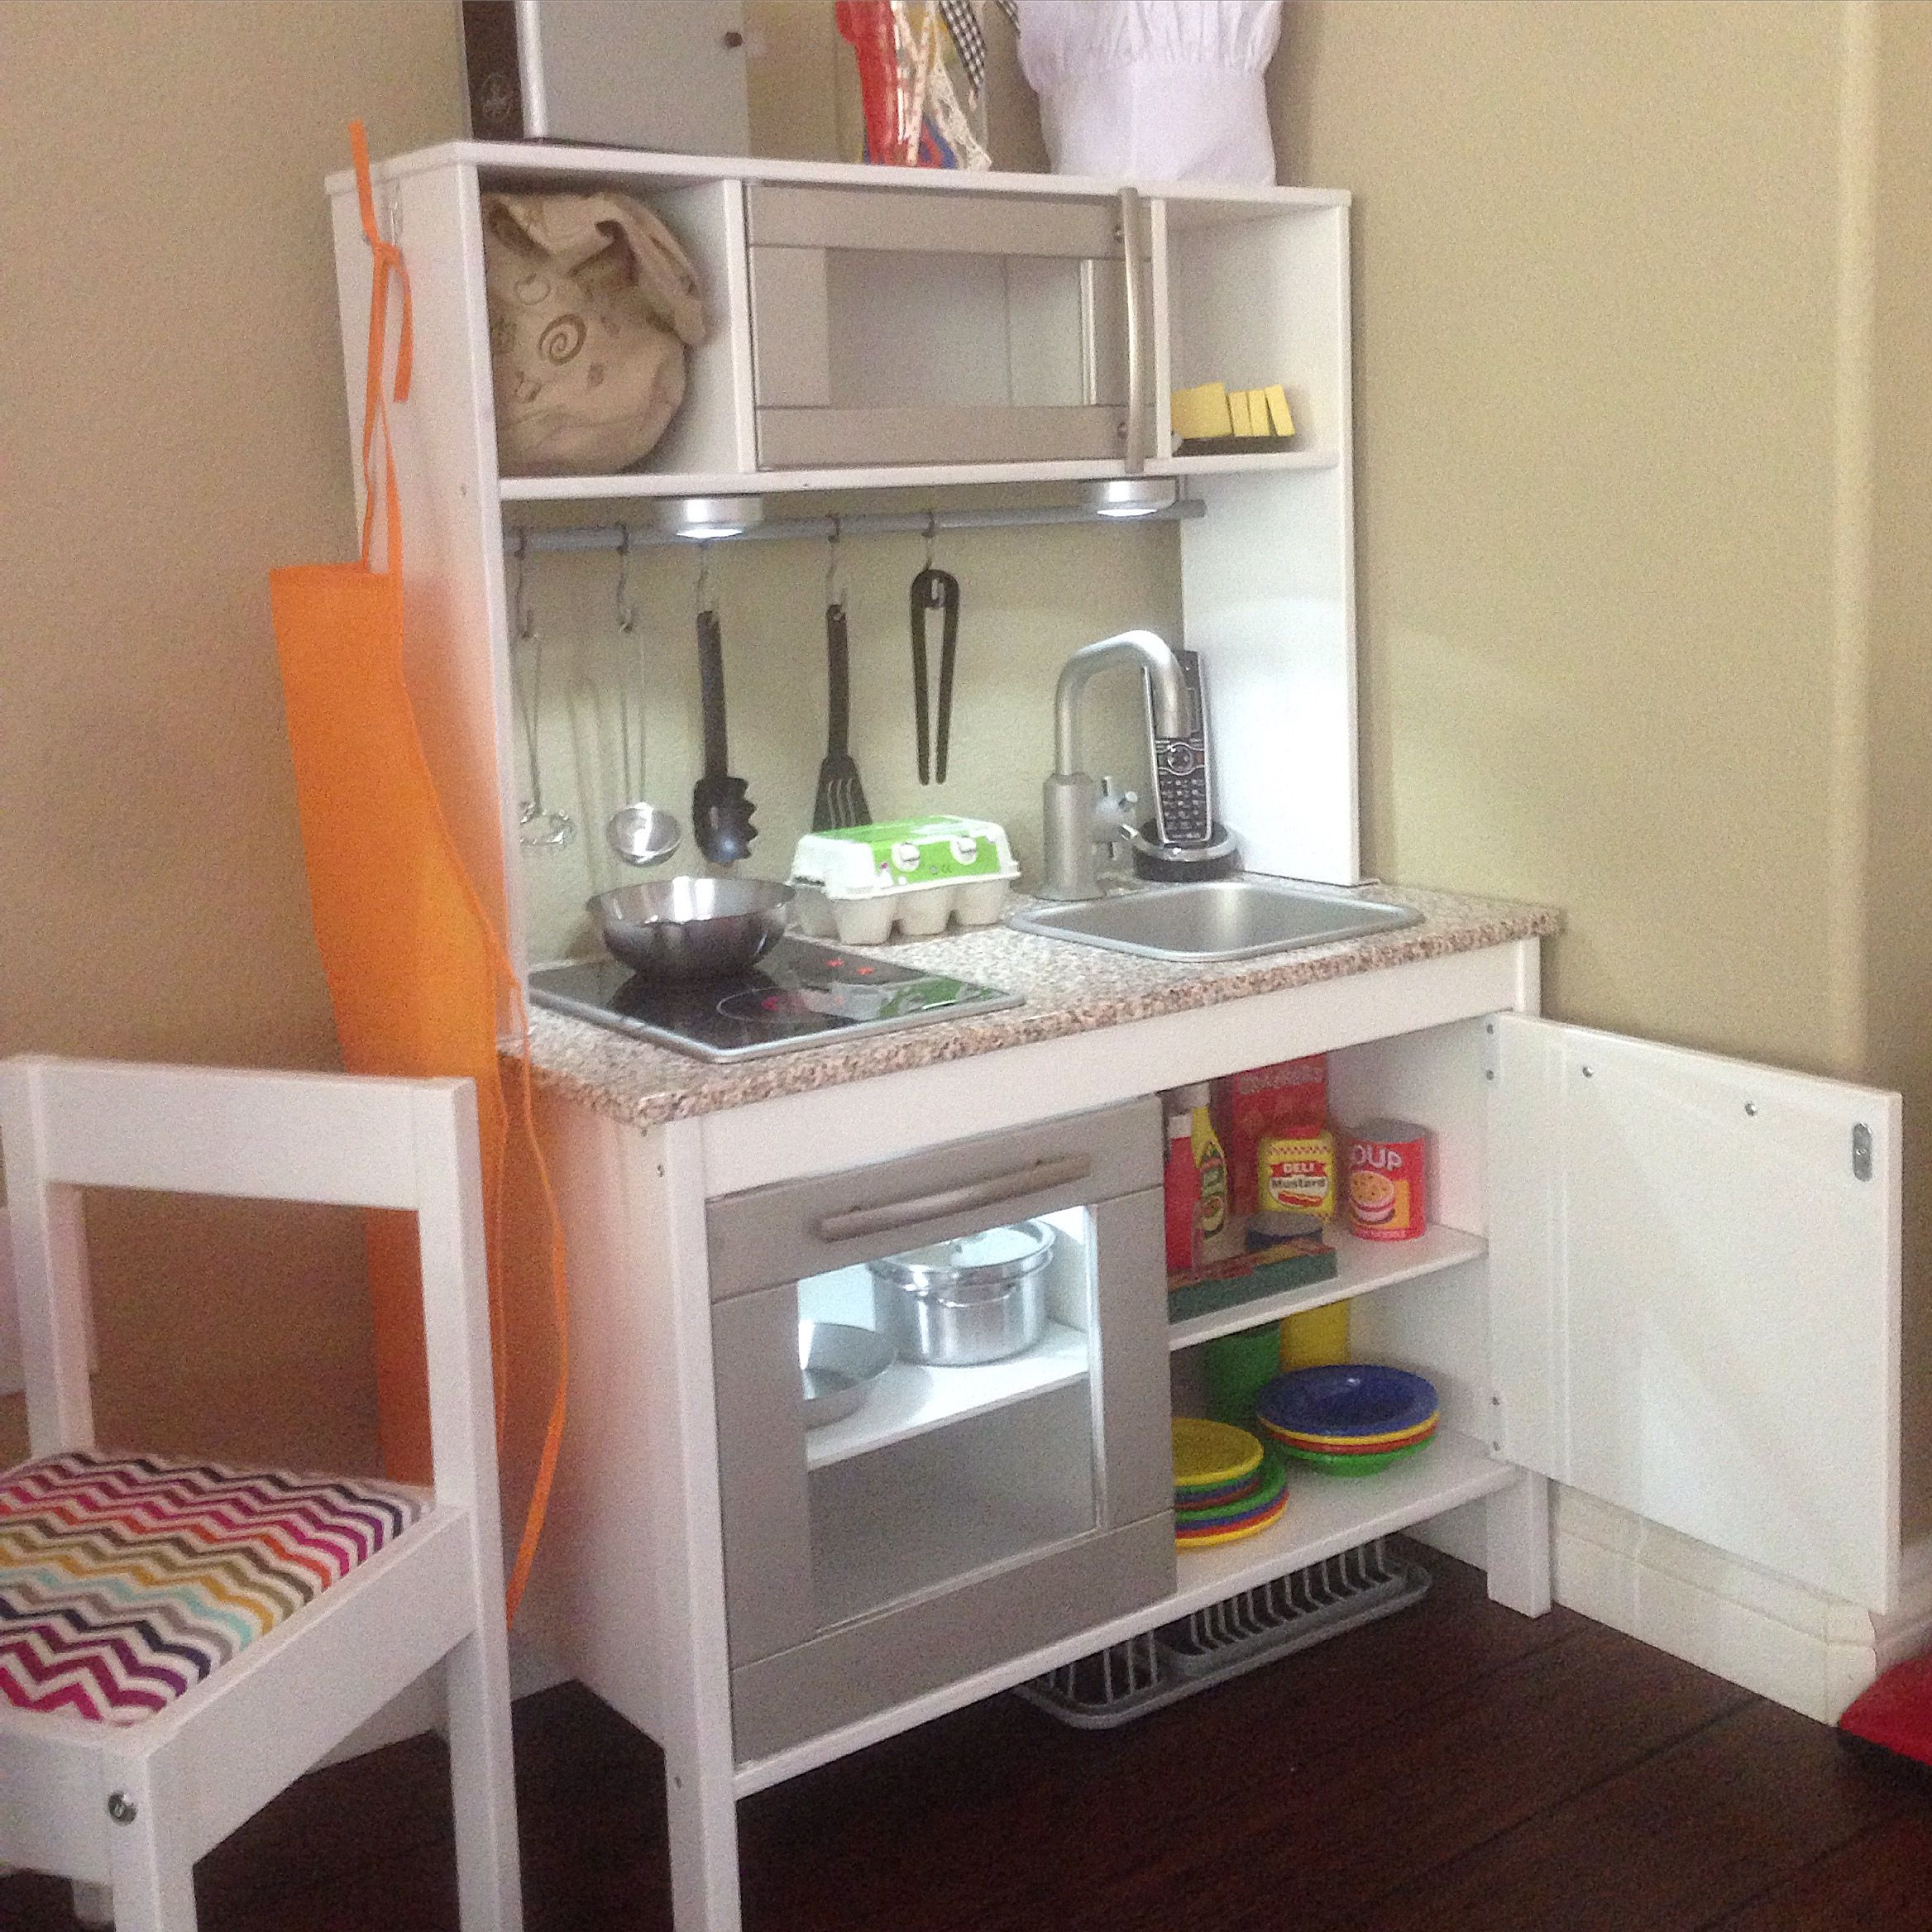 Ikea duktig play kitchen hack crafting pinterest for Play kitchen set ikea